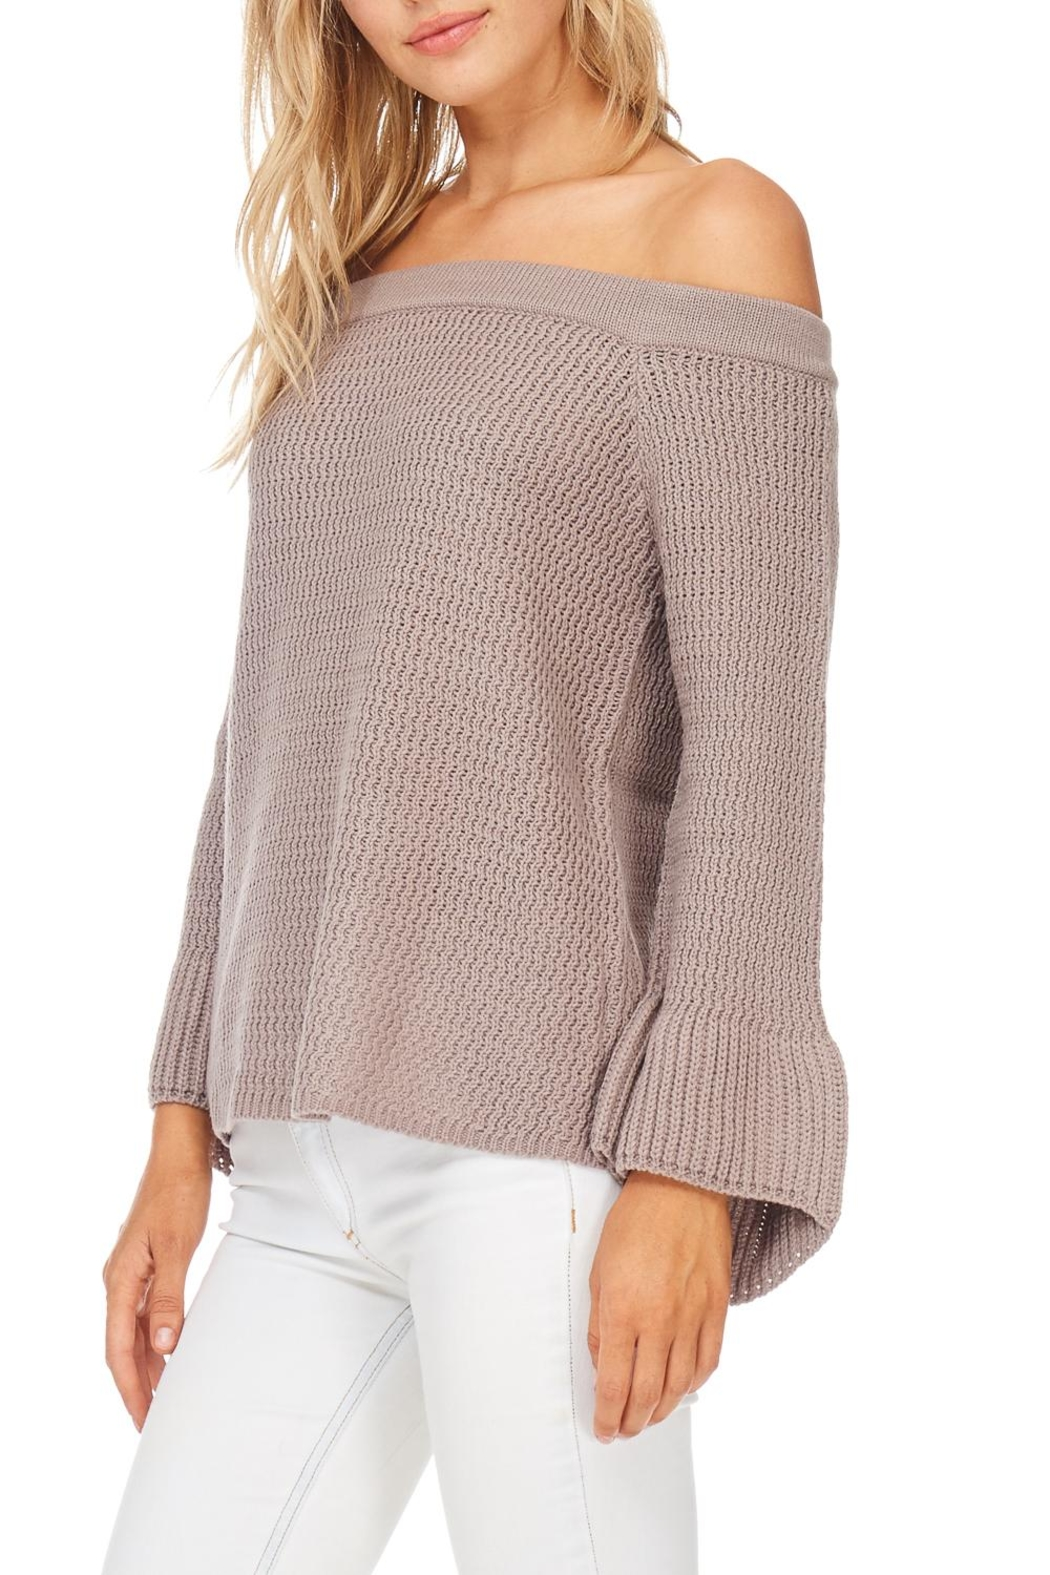 LoveRiche Solid Off The Shoulder Sweater - Side Cropped Image